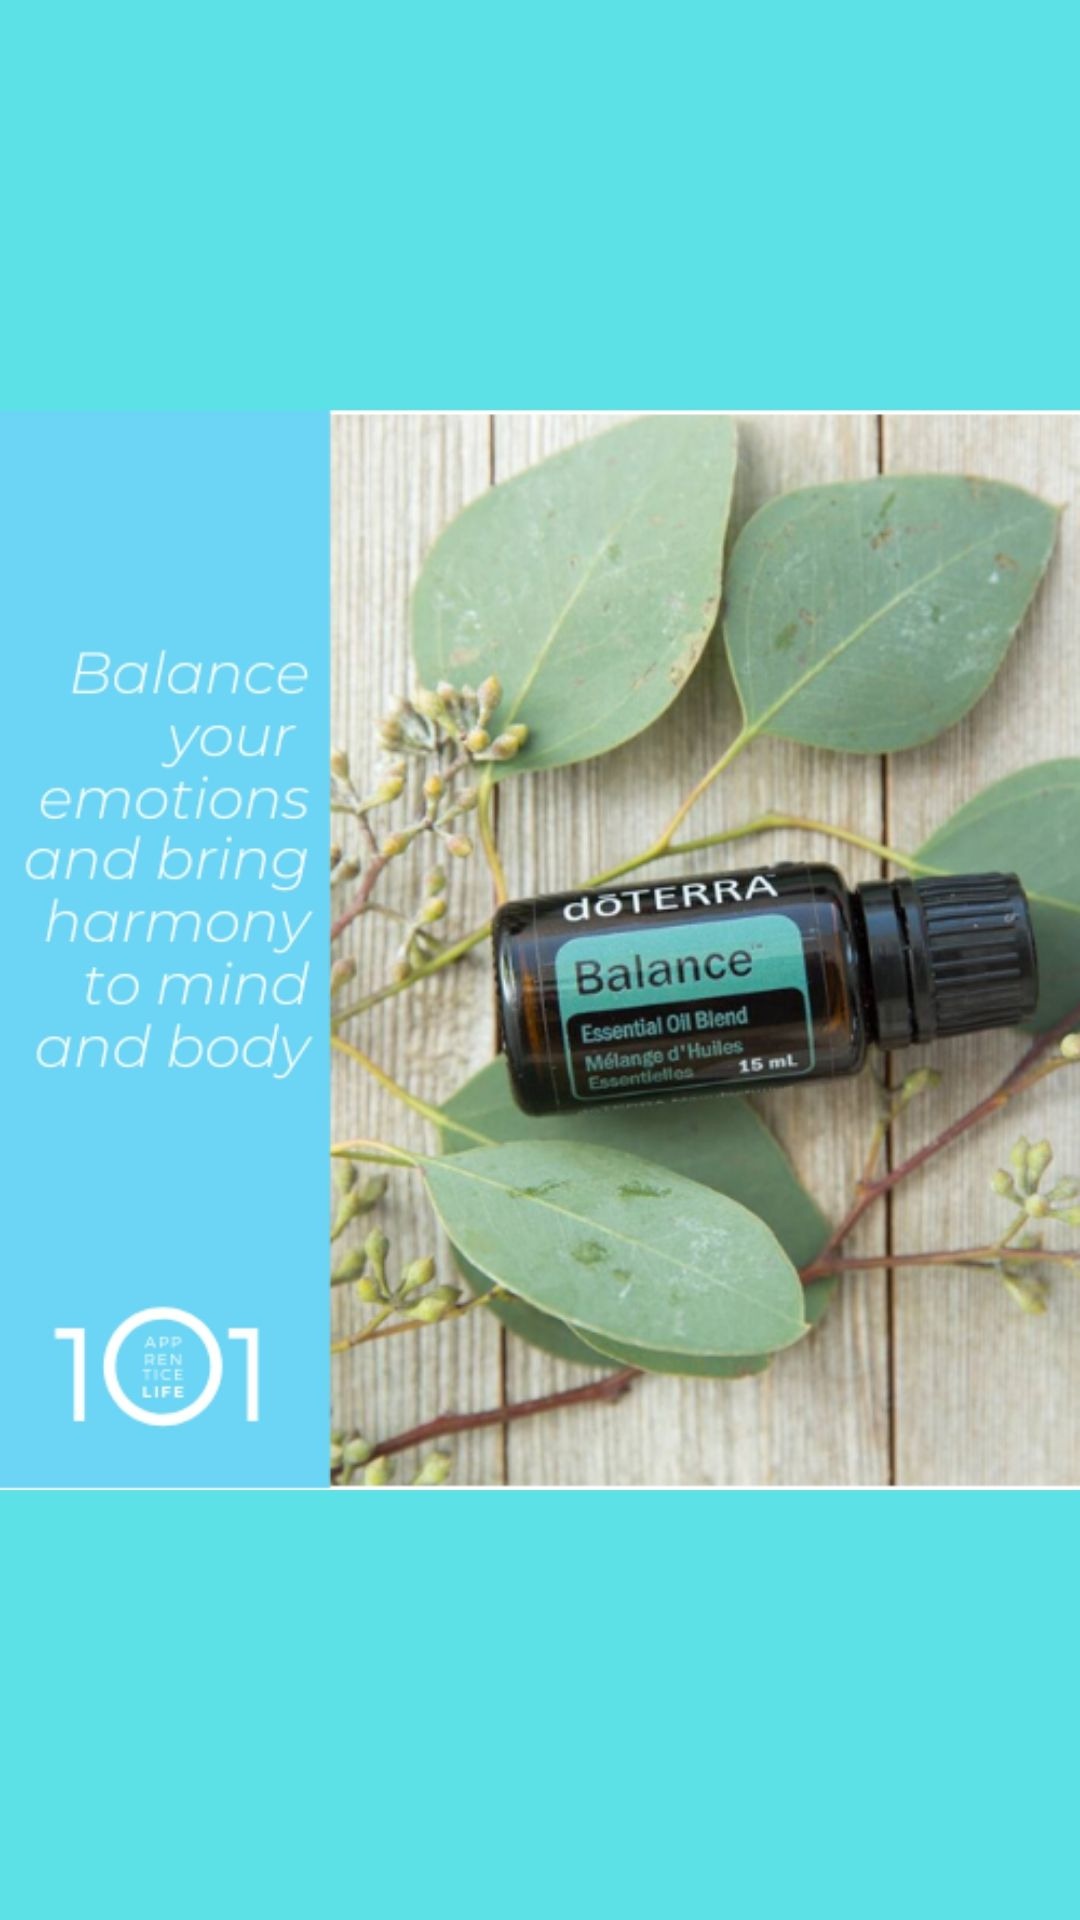 Balance Blend creates a sense of calm and well-being